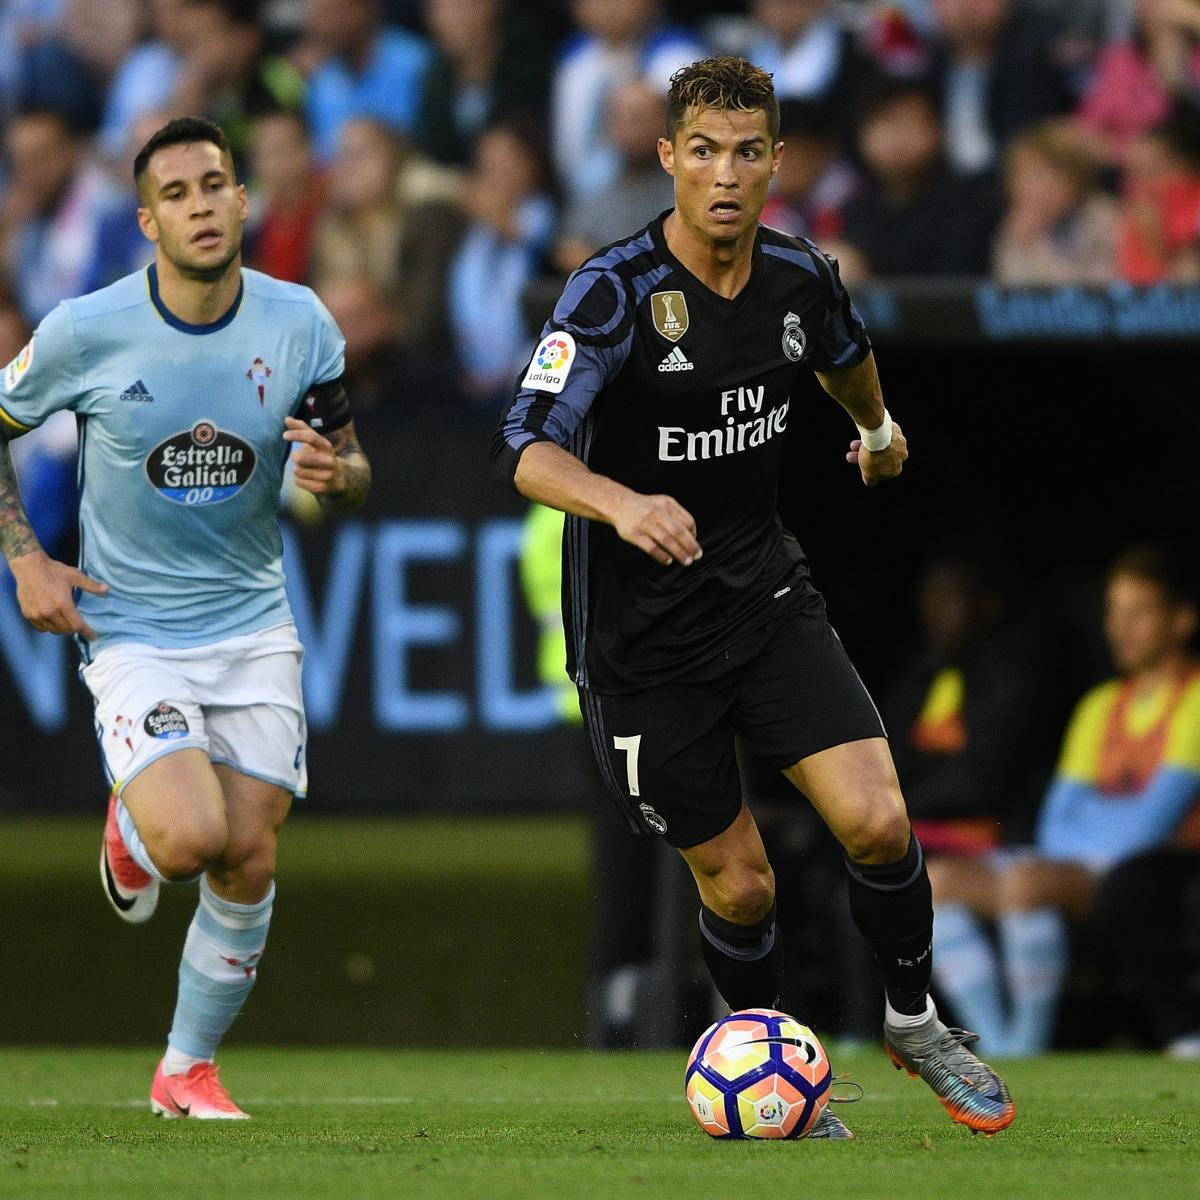 Celta Vigo Vs Barcelona Direct: Celta Vigo Vs. Real Madrid: Team News, Preview, Live